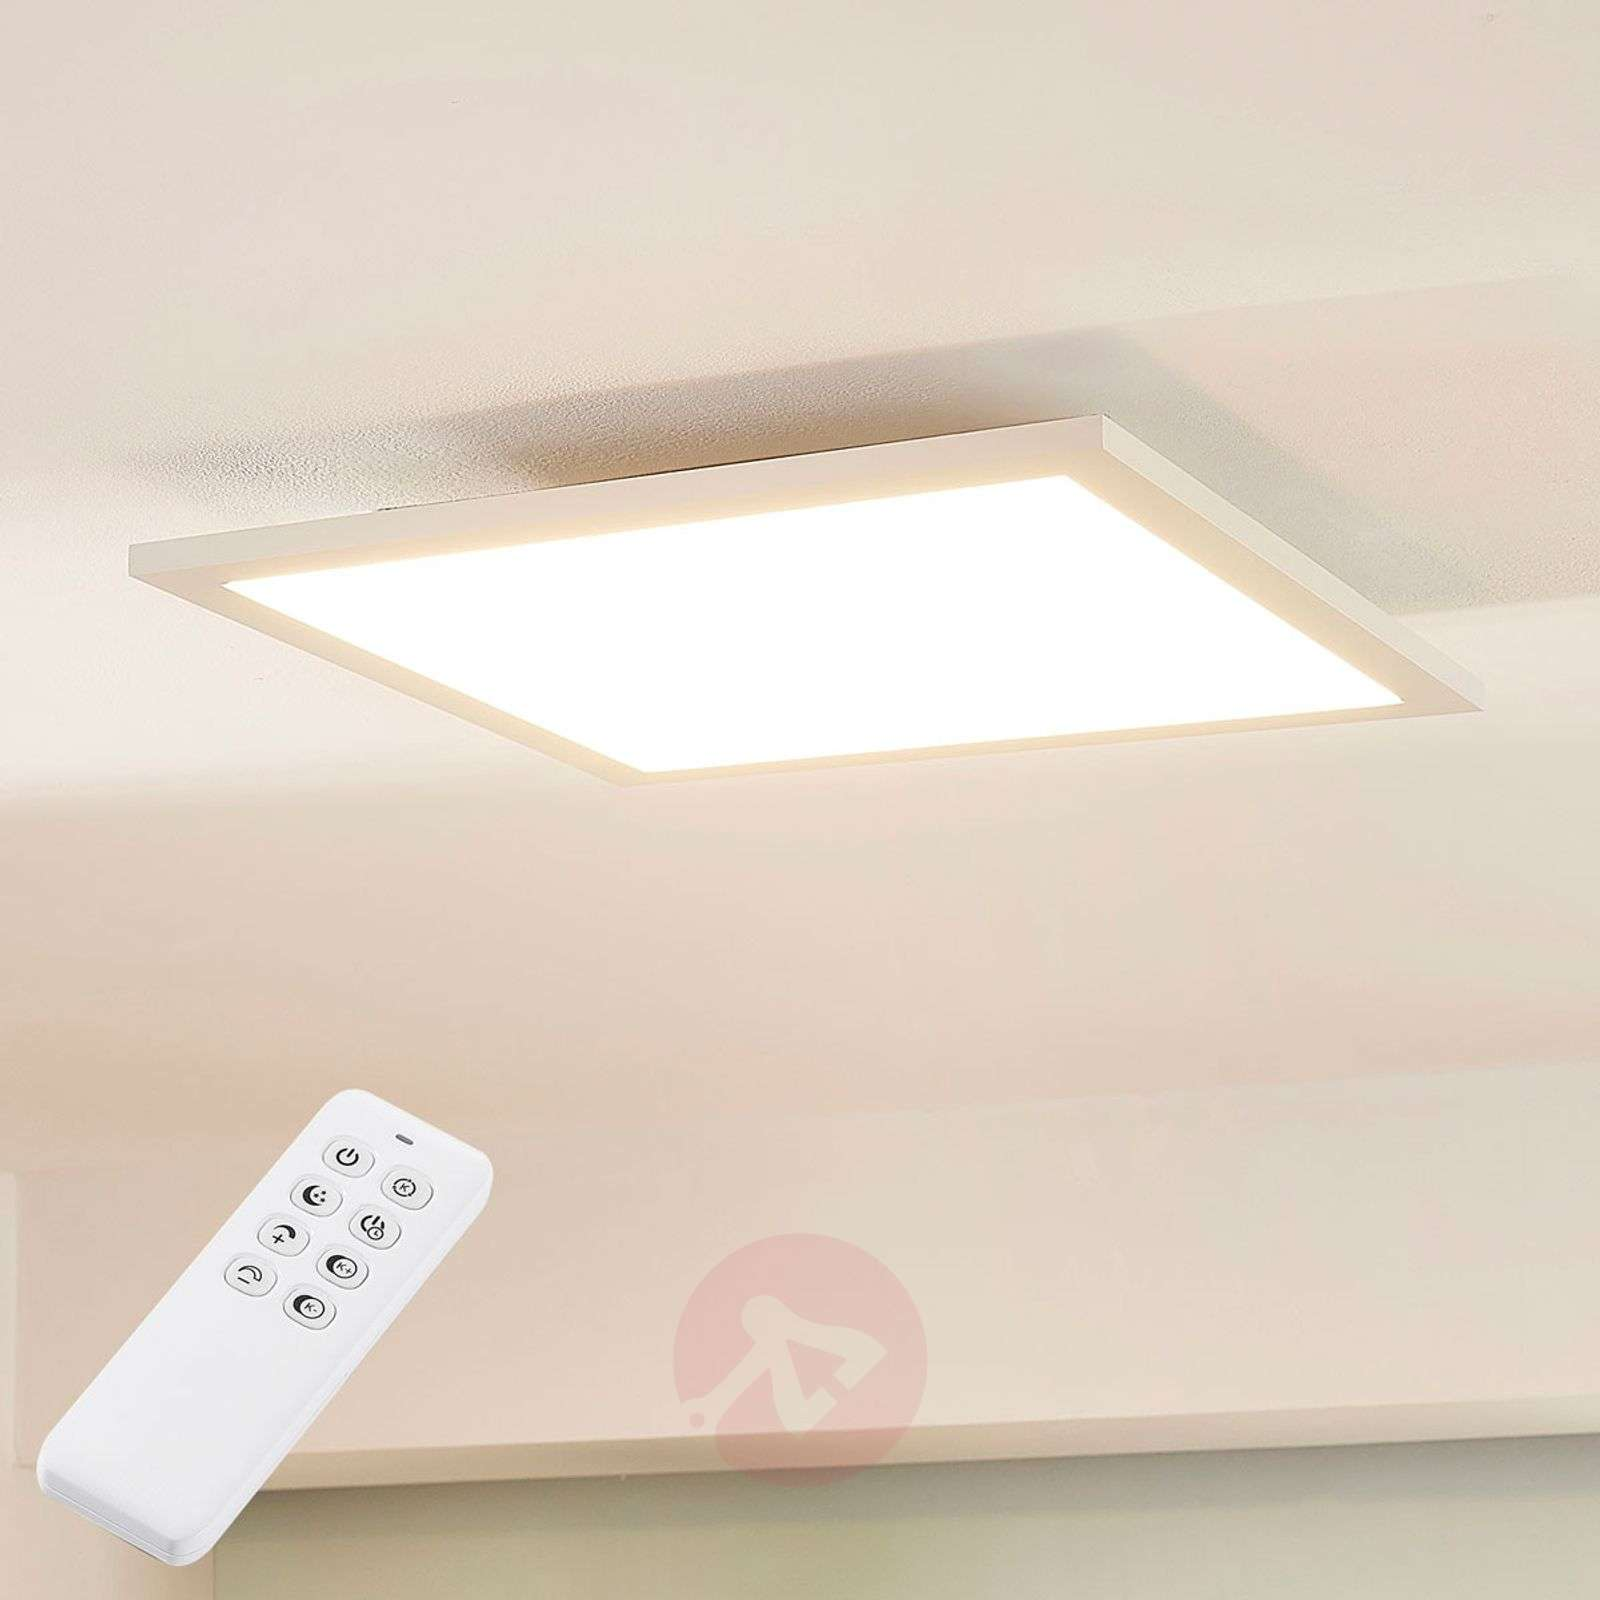 Lysander dimmable LED ceiling lamp, remote control-9621554-01